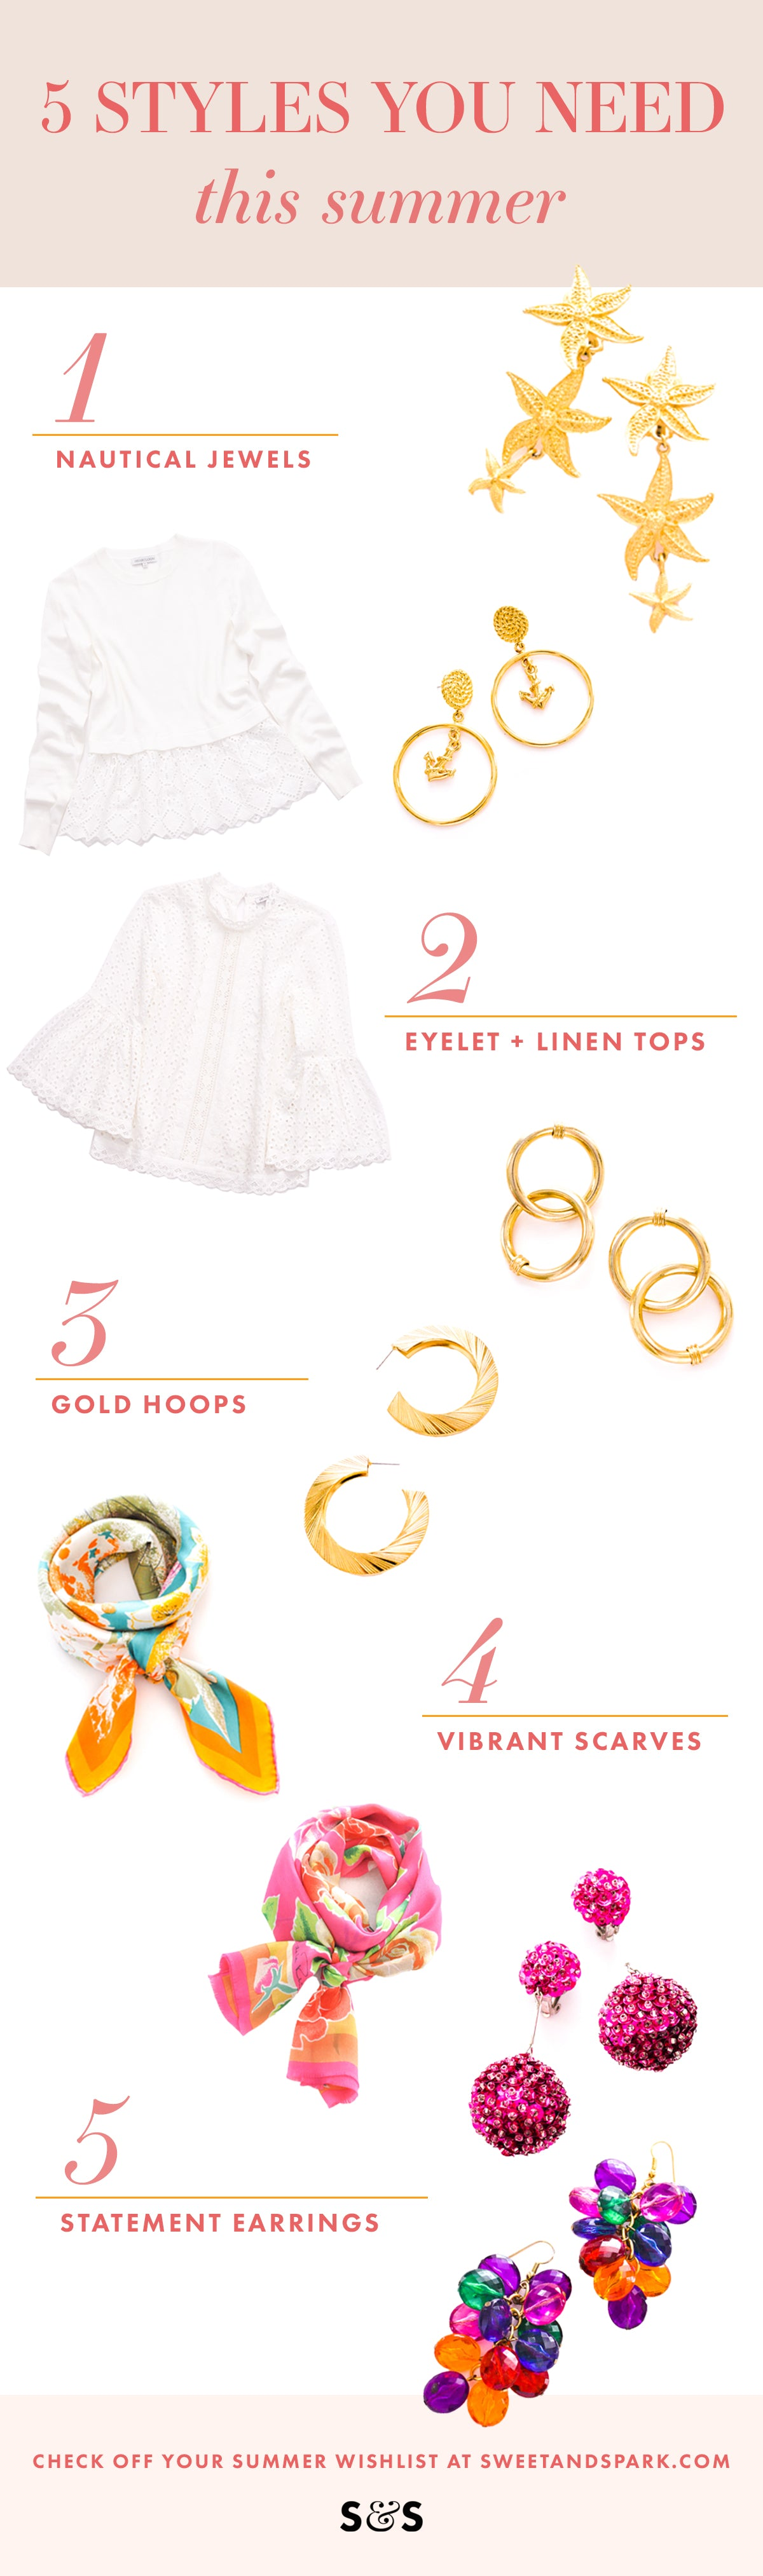 Summer 2018 Essentials from Sweet & Spark